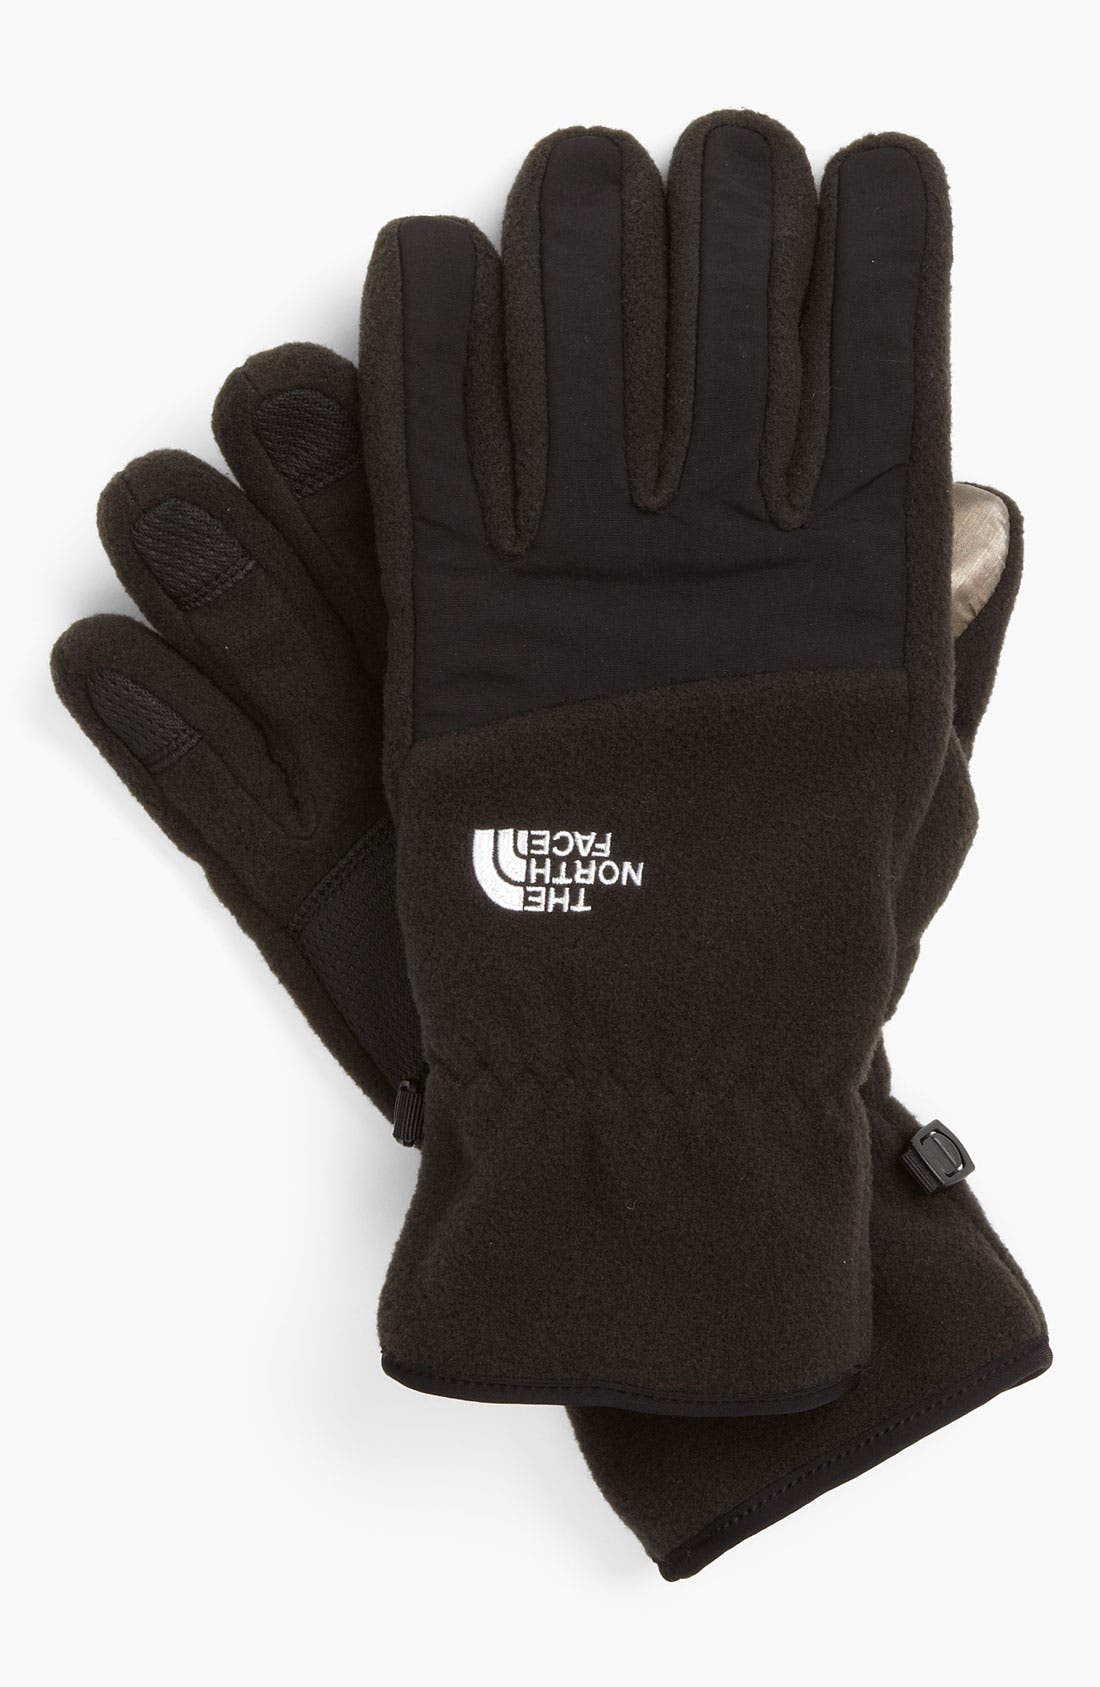 Main Image - The North Face 'E-Tip Denali' Fleece Gloves